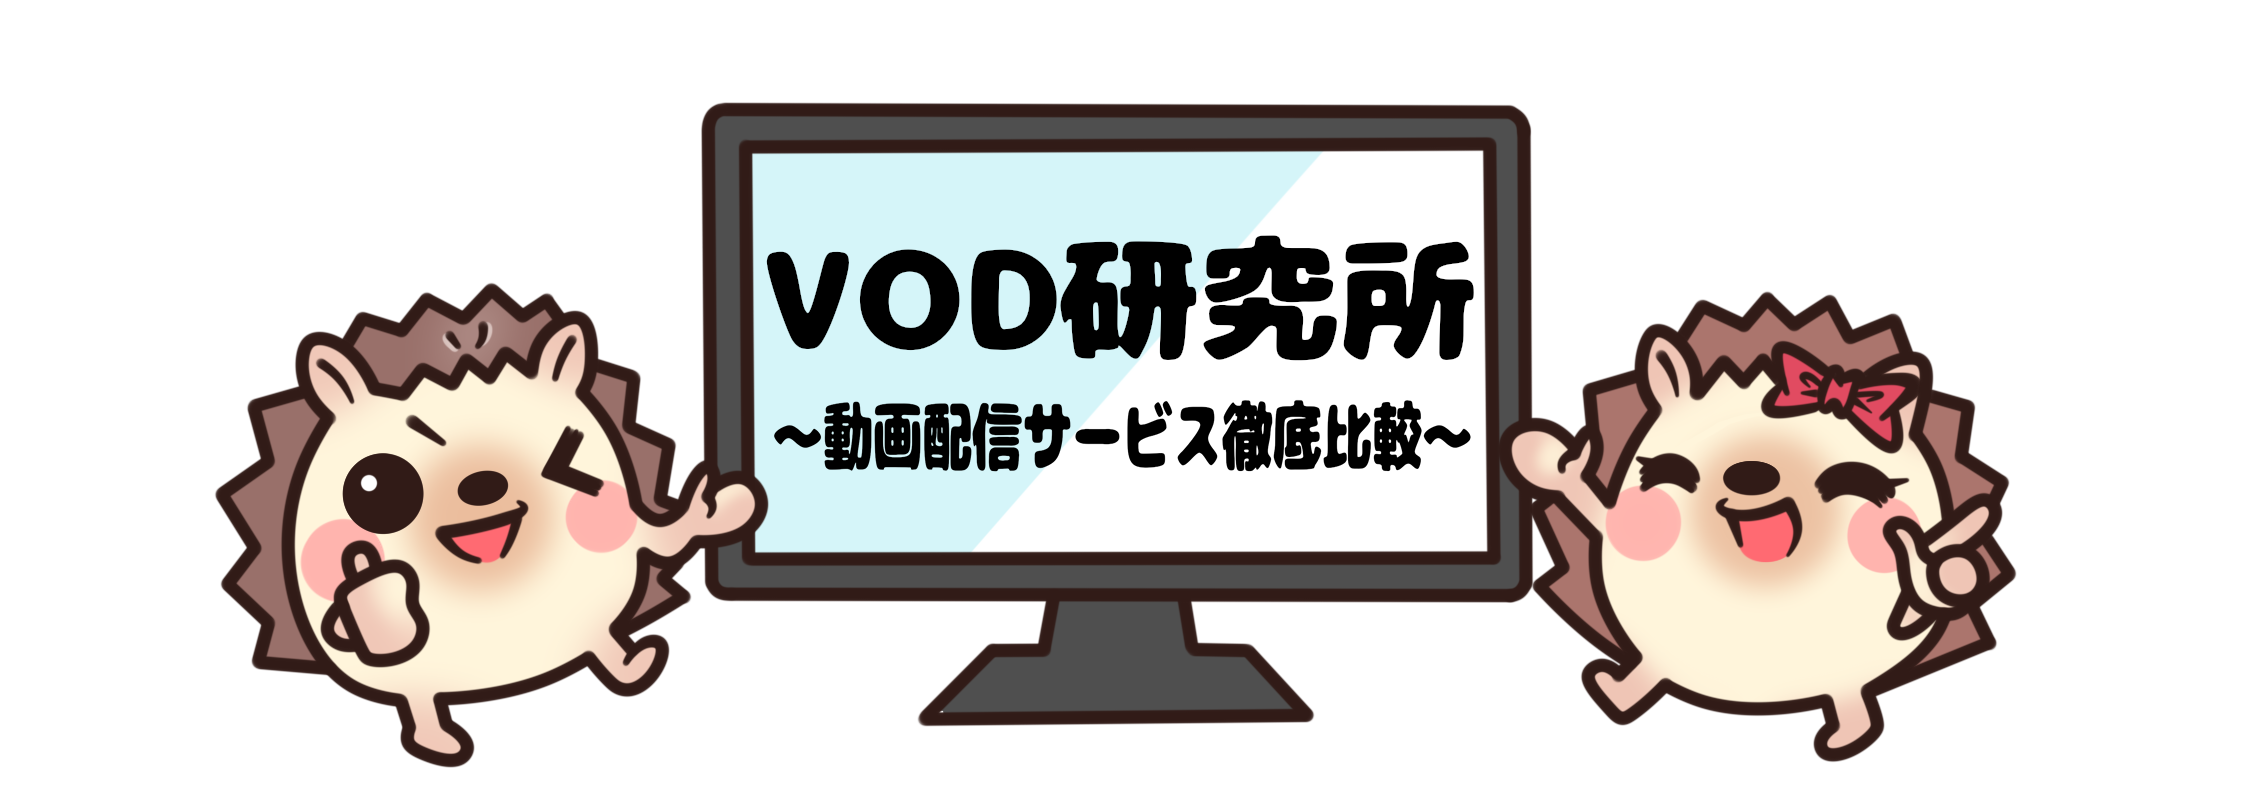 動画配信サービス一覧 おススメ12社を完全比較!【2019年最新版】